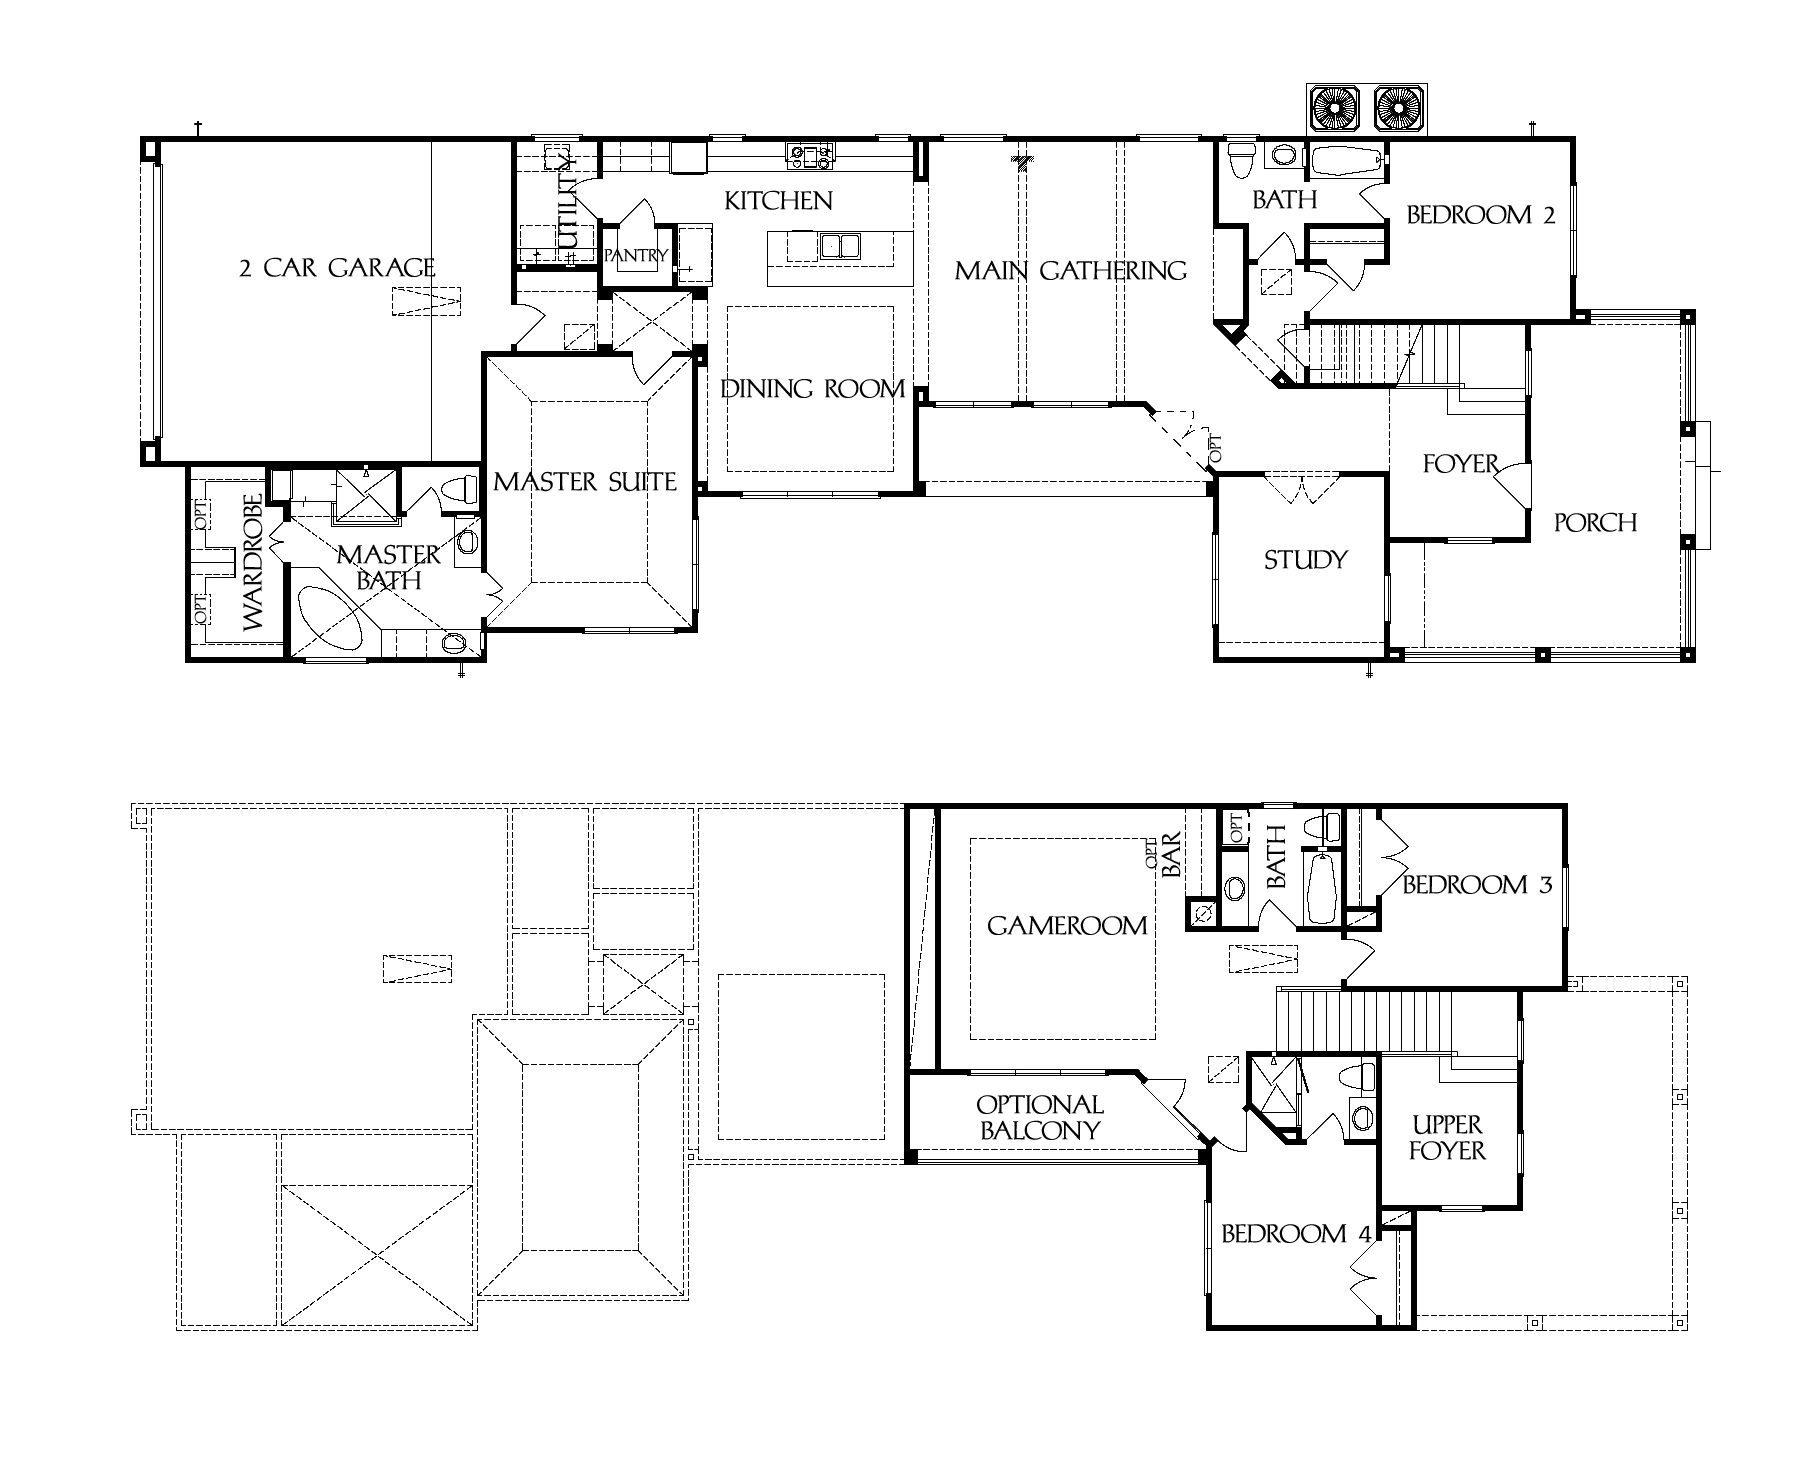 3000 sq ft house plans joy studio design gallery best for 3000 sq ft apartment floor plan